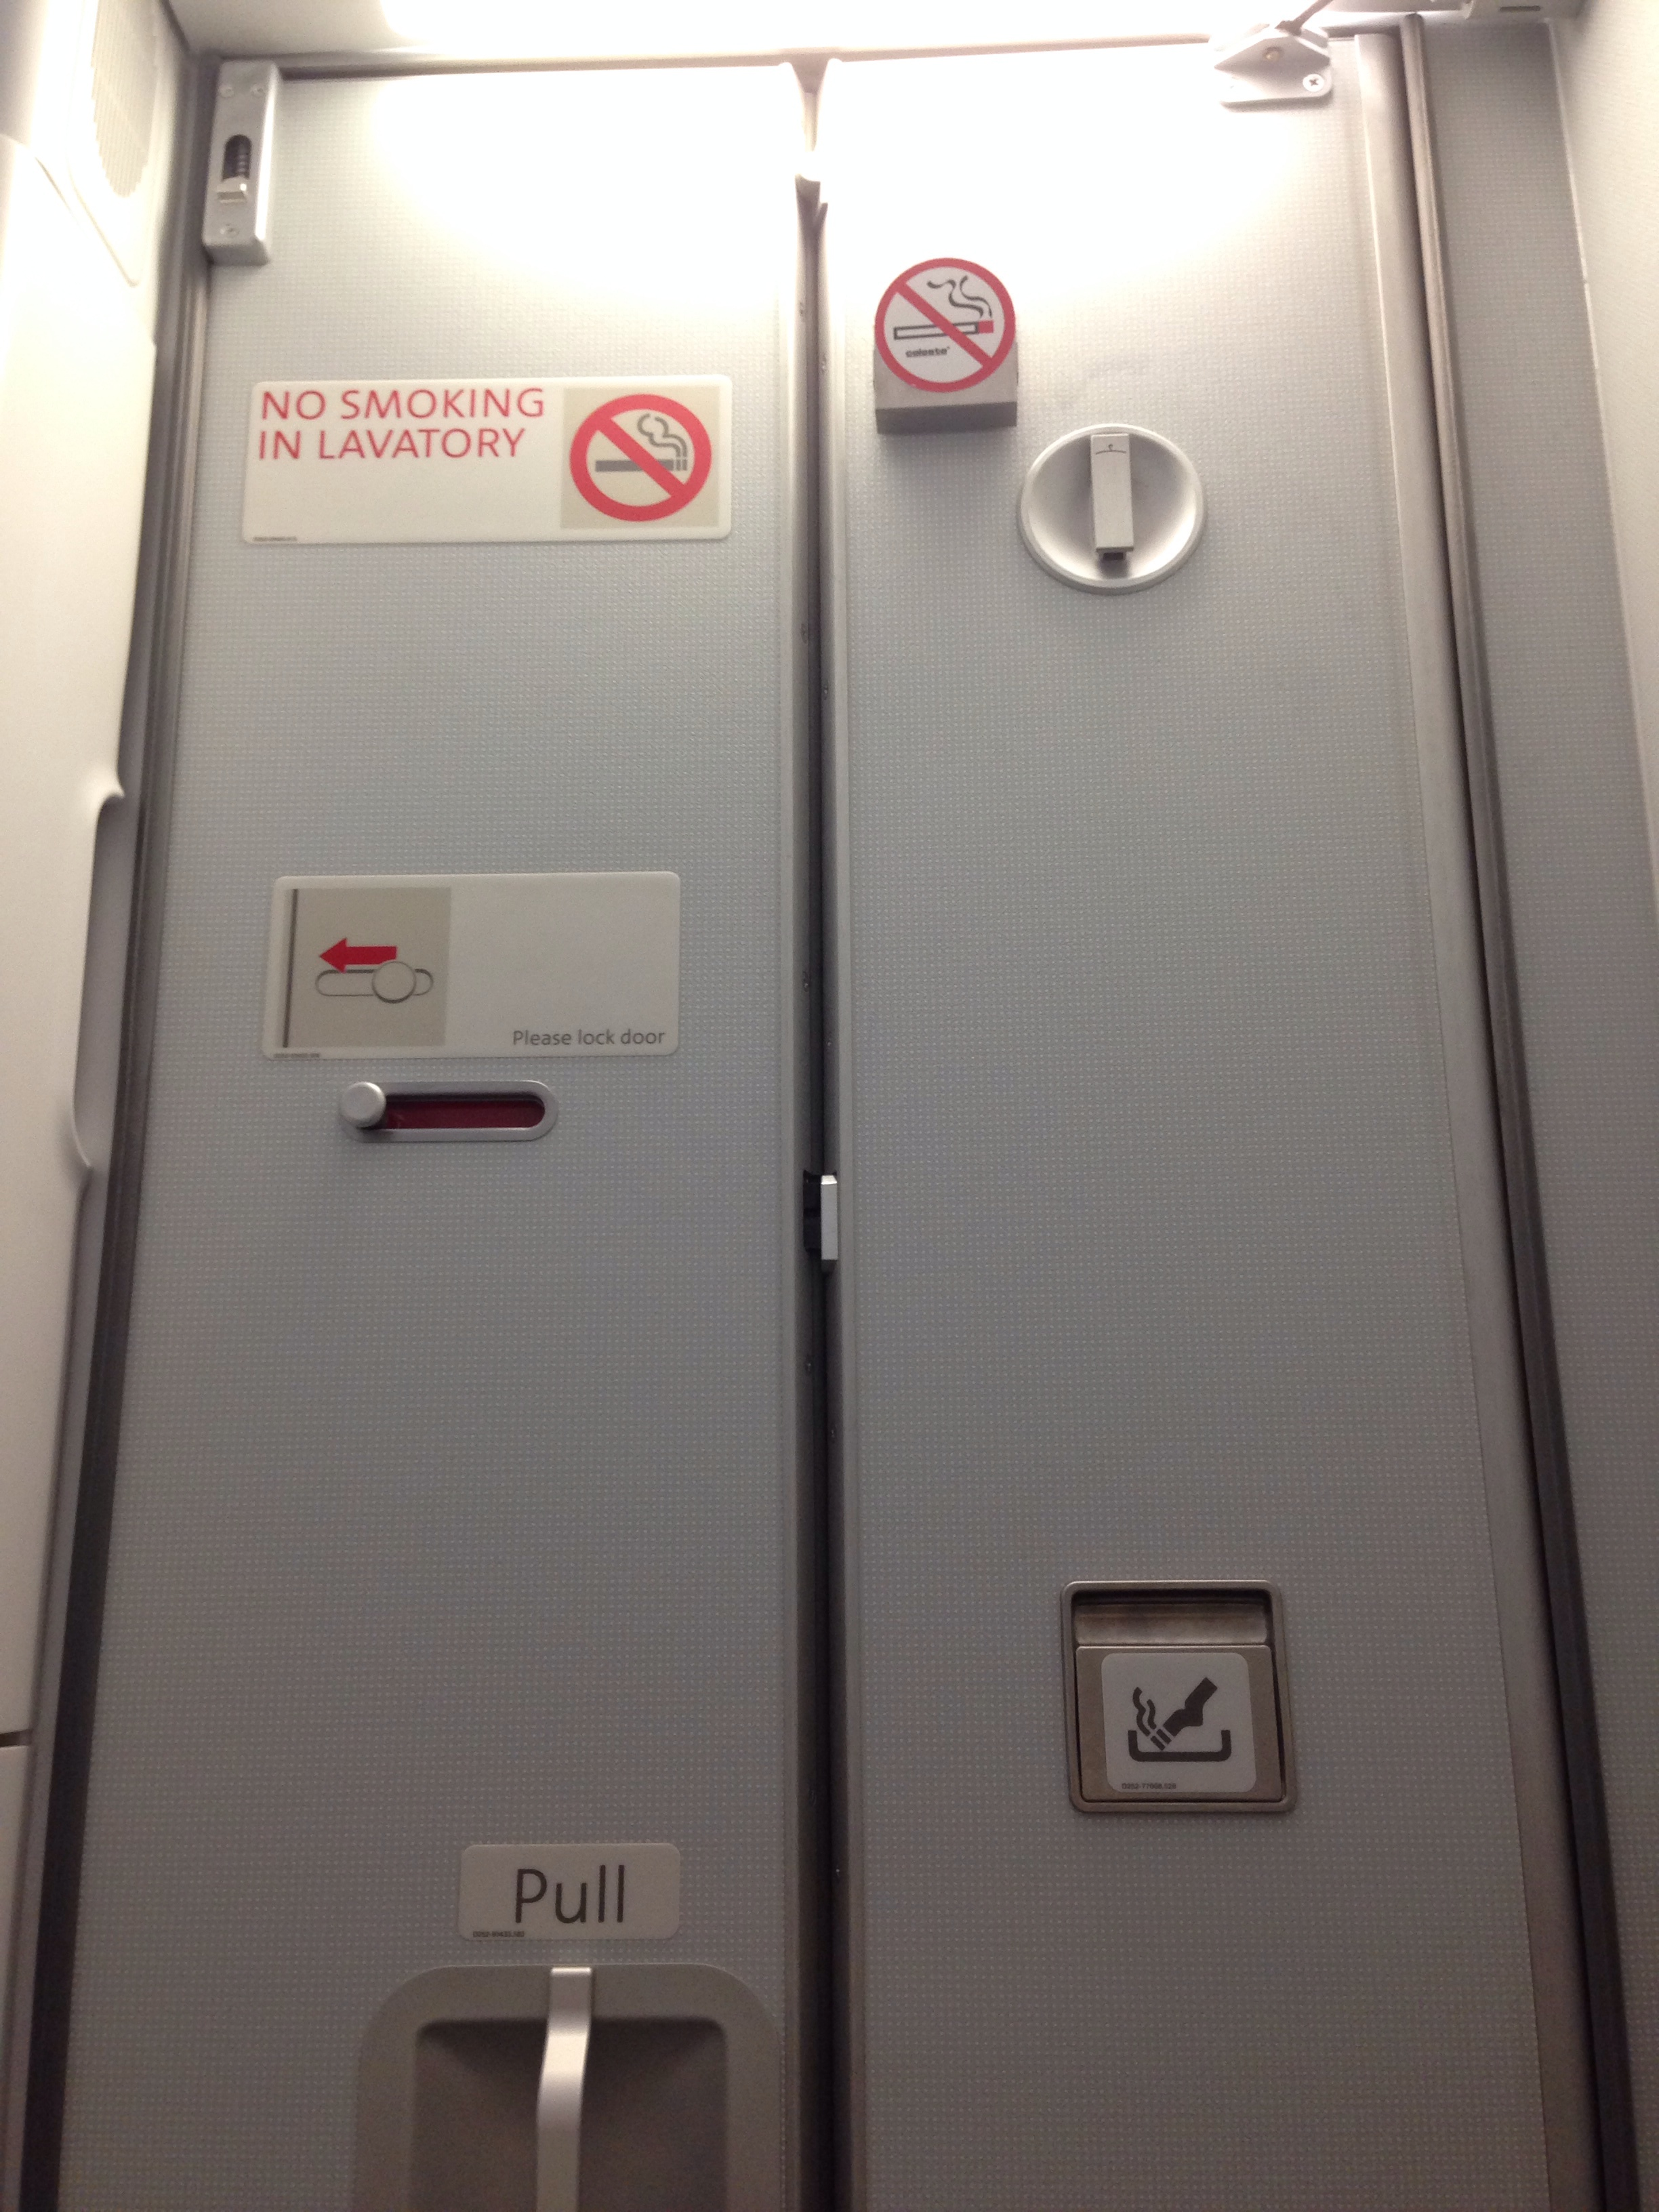 No smoking sign in the lavatory